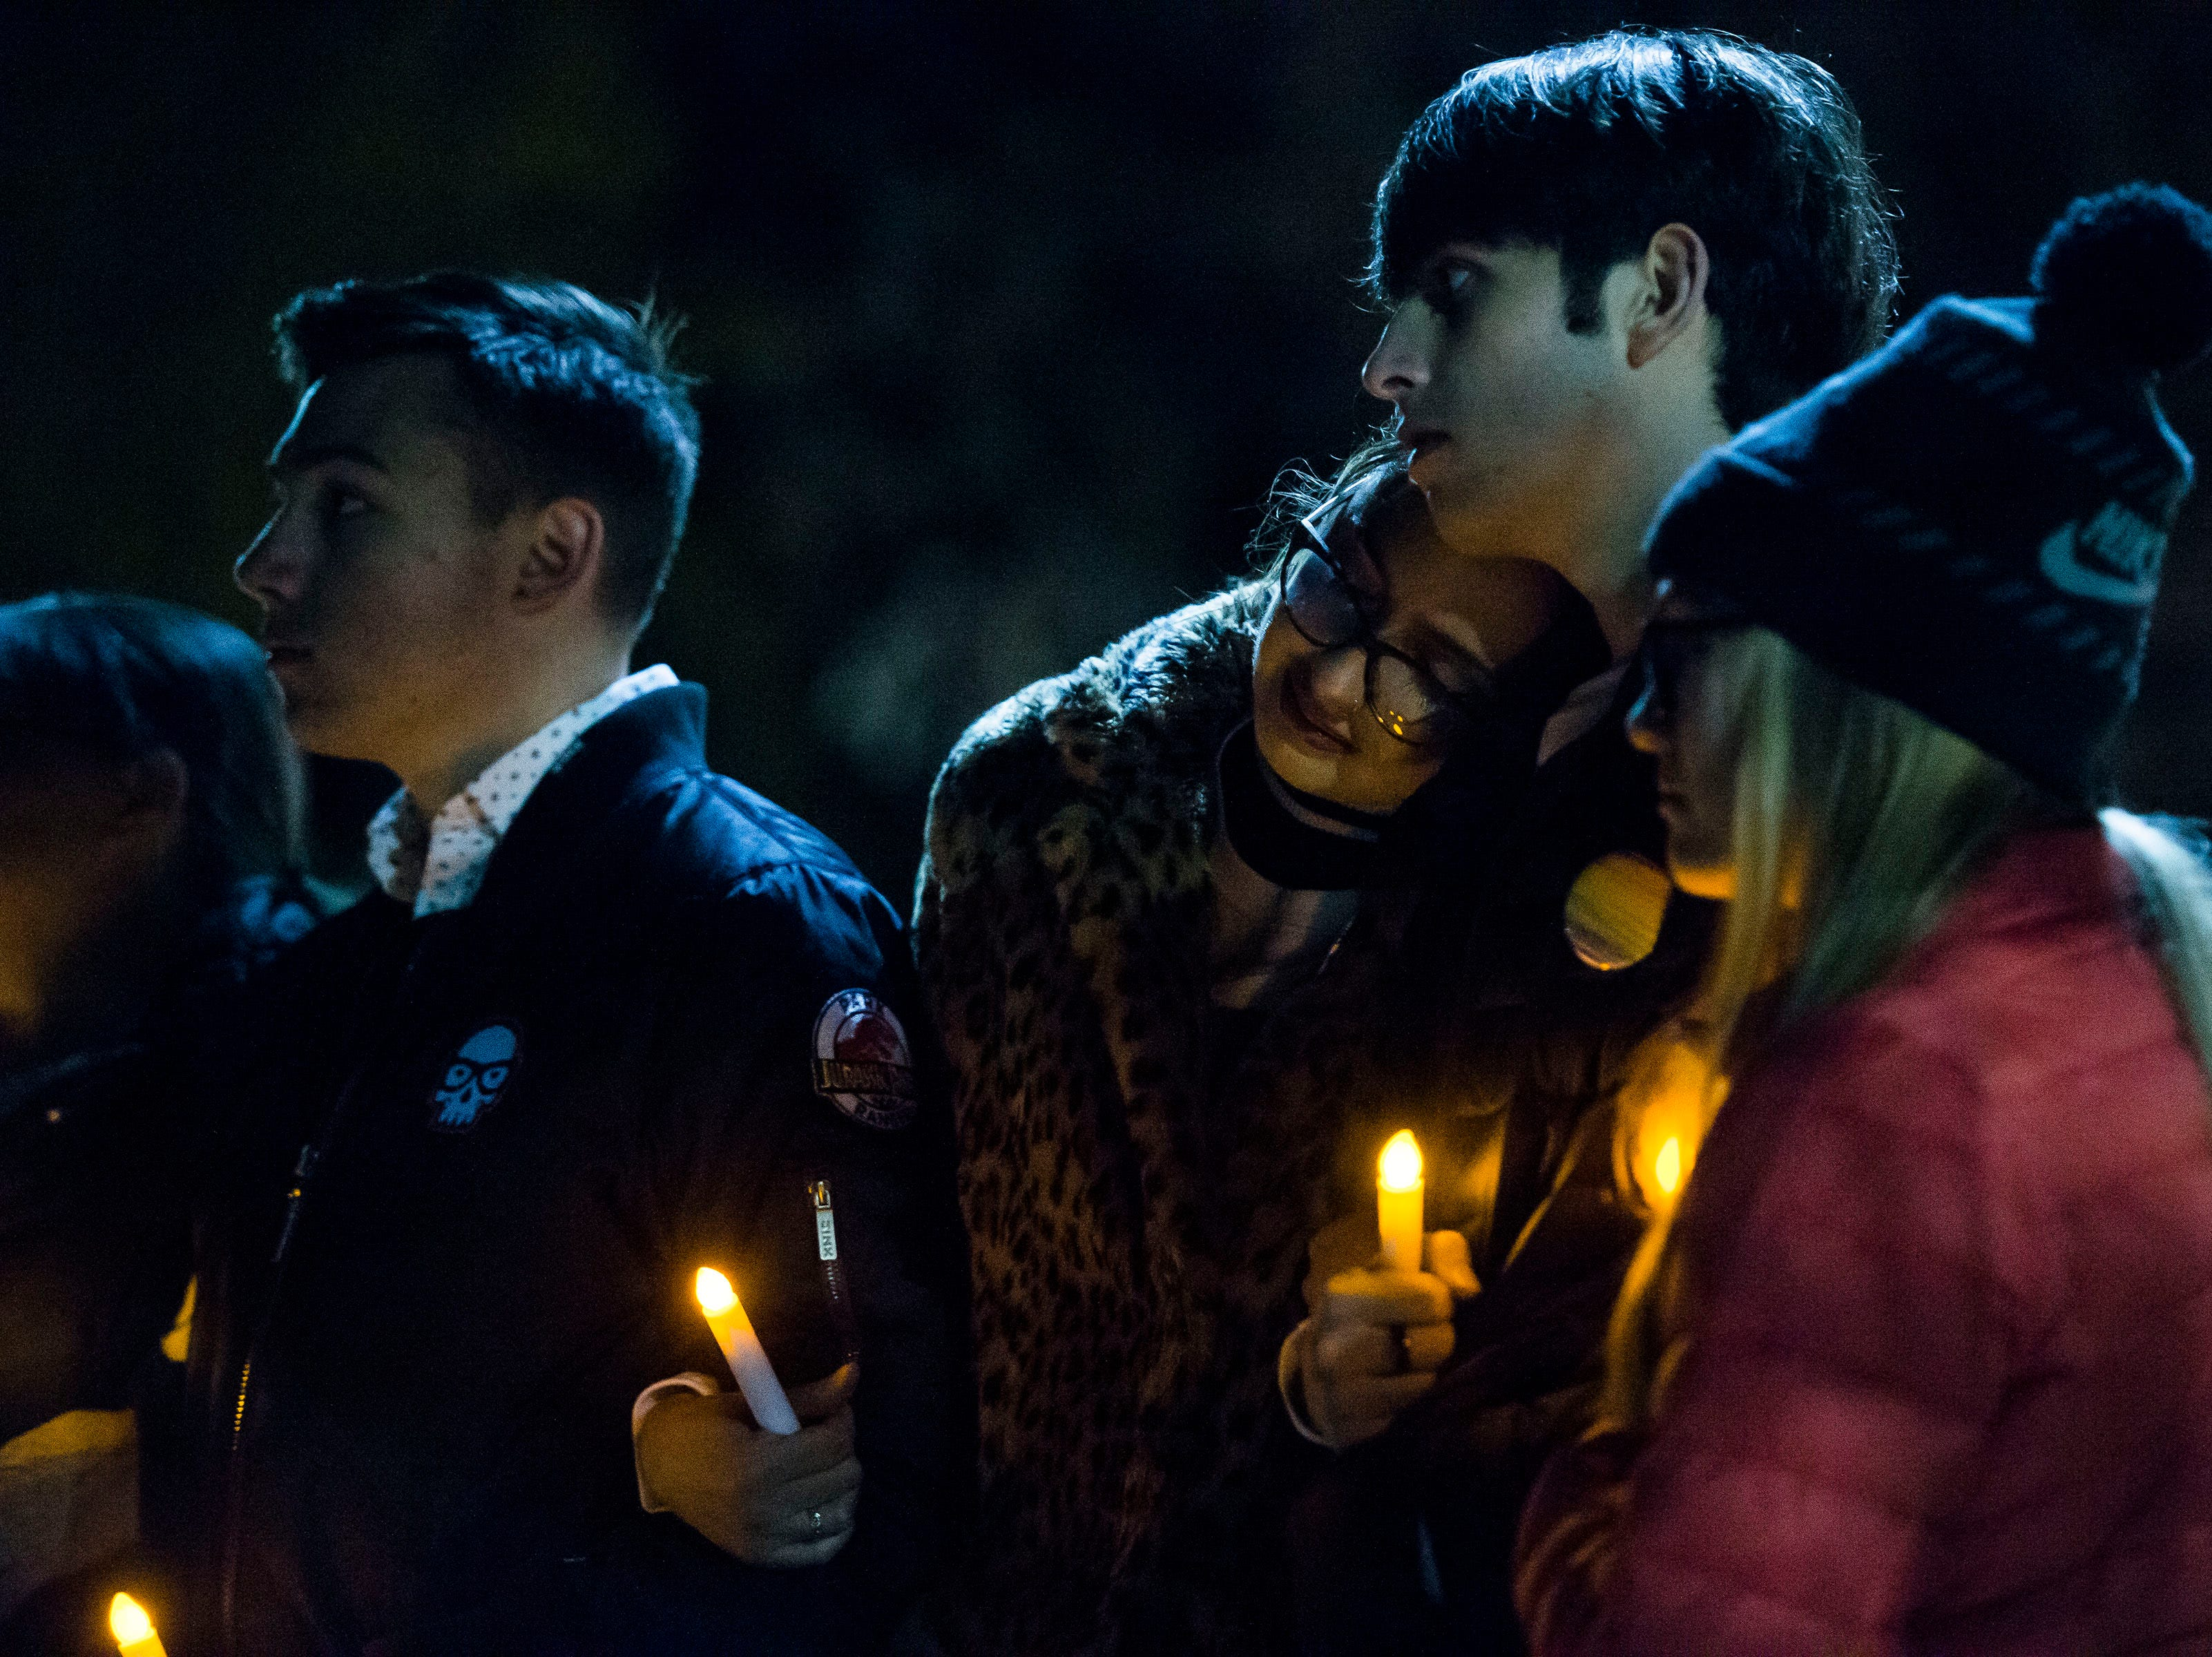 University of Wyoming sophomore Claire Olson rests her head of freshman Hayden Higgins' shoulder during a candlelight vigil on the 20th anniversary of Matthew Shepard's death on Friday, Oct. 12, 2018, at Prexy's Pasture on the University of Wyoming campus in Laramie, Wyo.